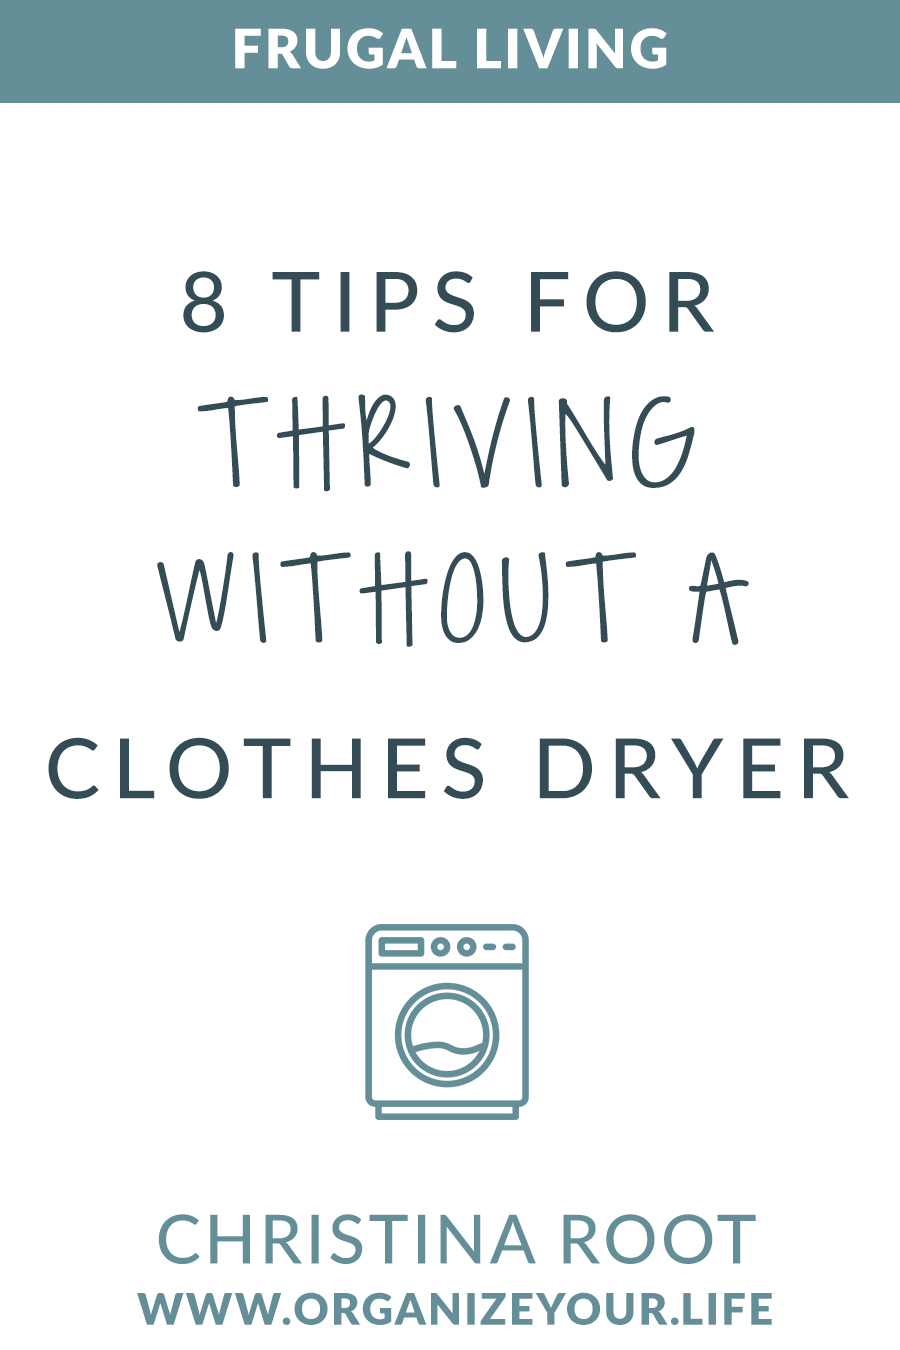 My 8 Best Tips That Make Living Without a Clothes Dryer Easier